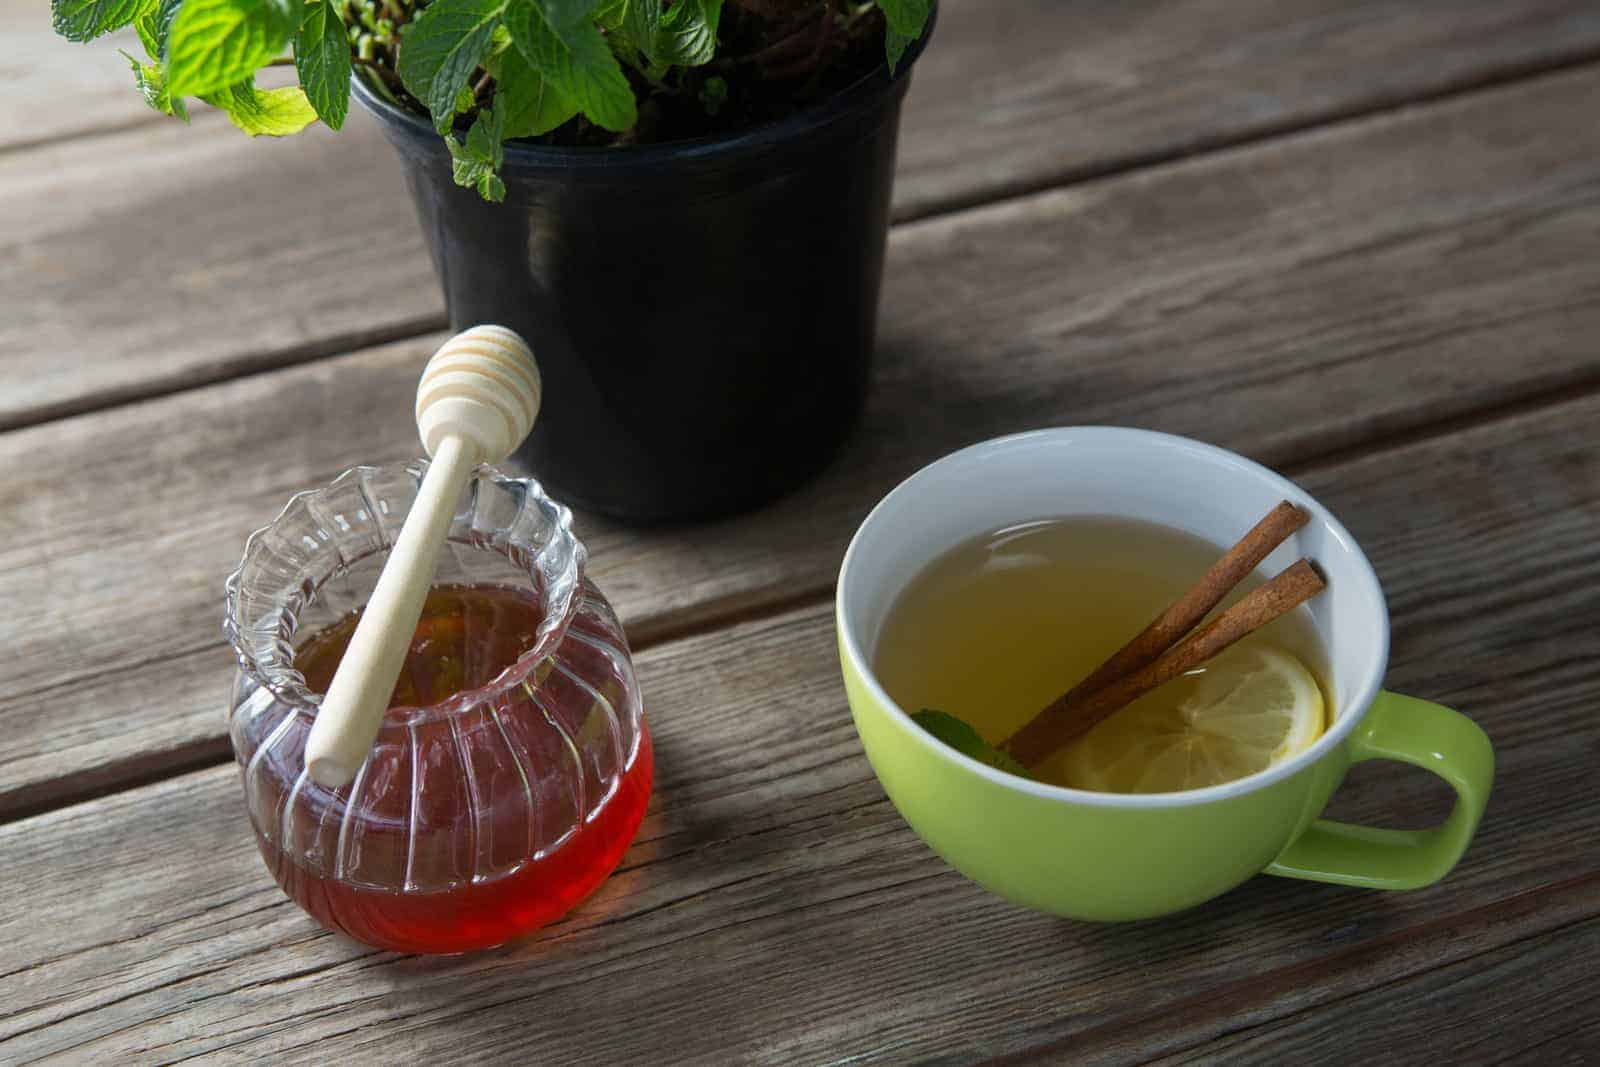 can you put honey in tea?